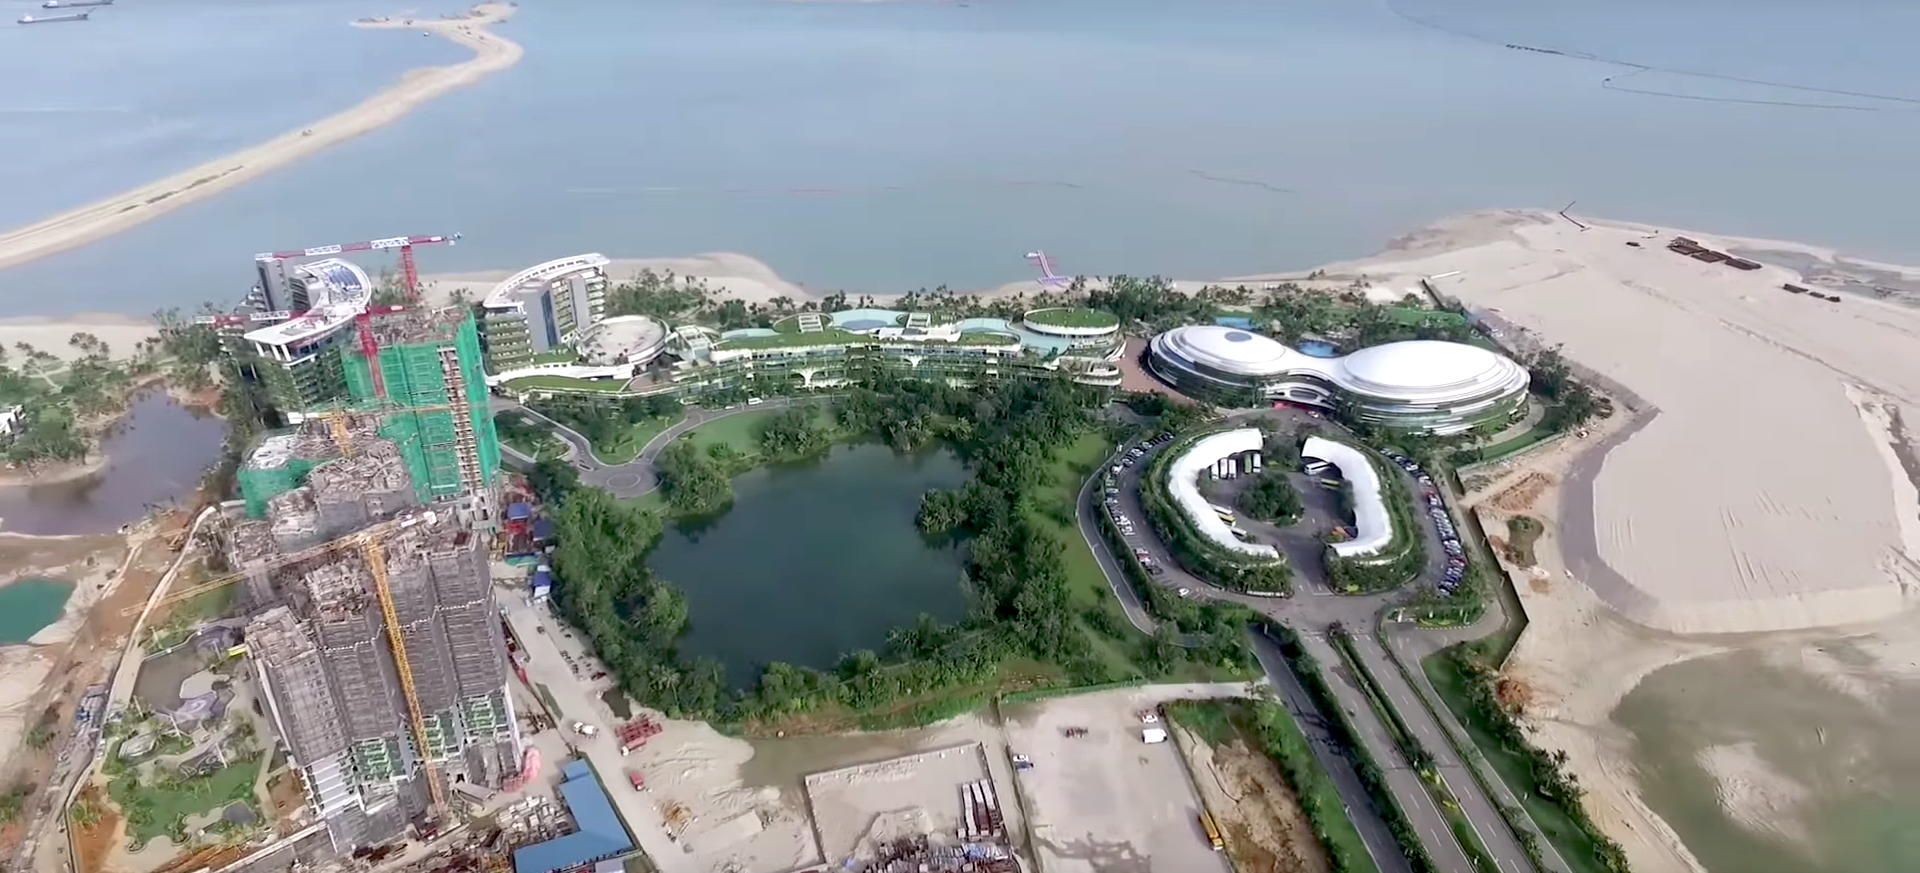 A Drone Video Of Forest City In Malaysia, Uploaded On April 22, 2017.